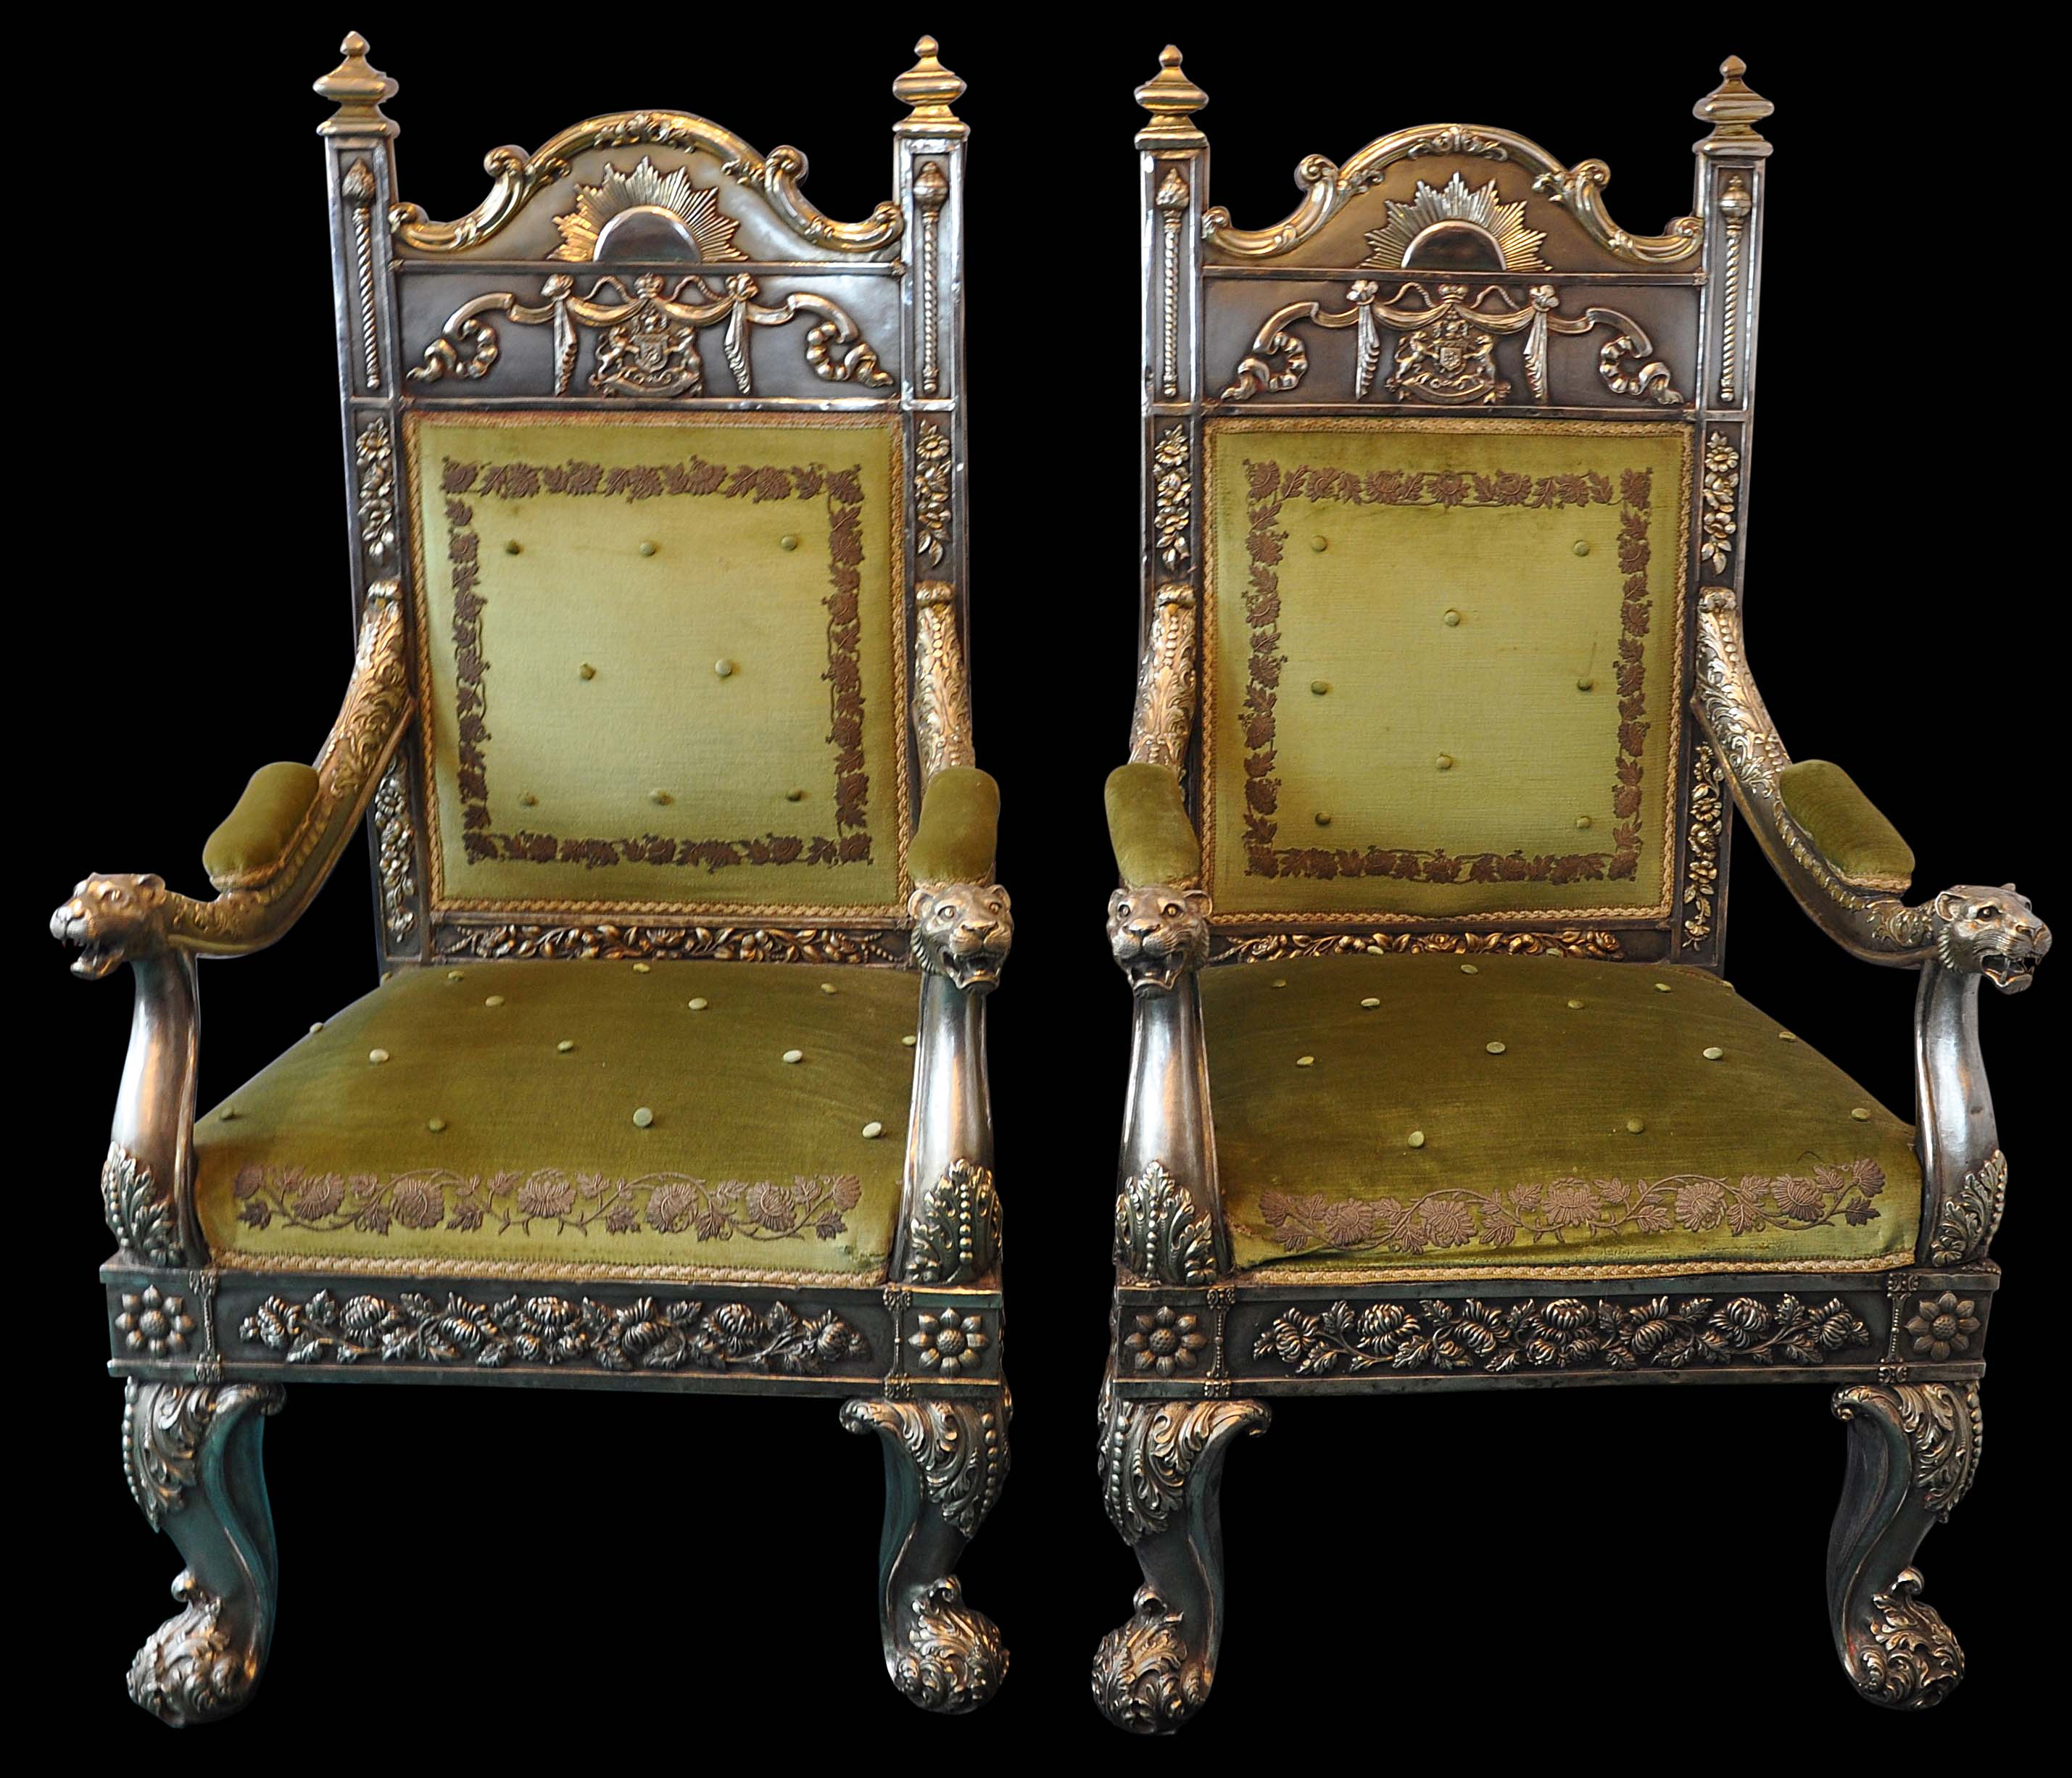 Silver Chairs Pair Of Gilded Silver Throne Chairs Of The Maharaja Of